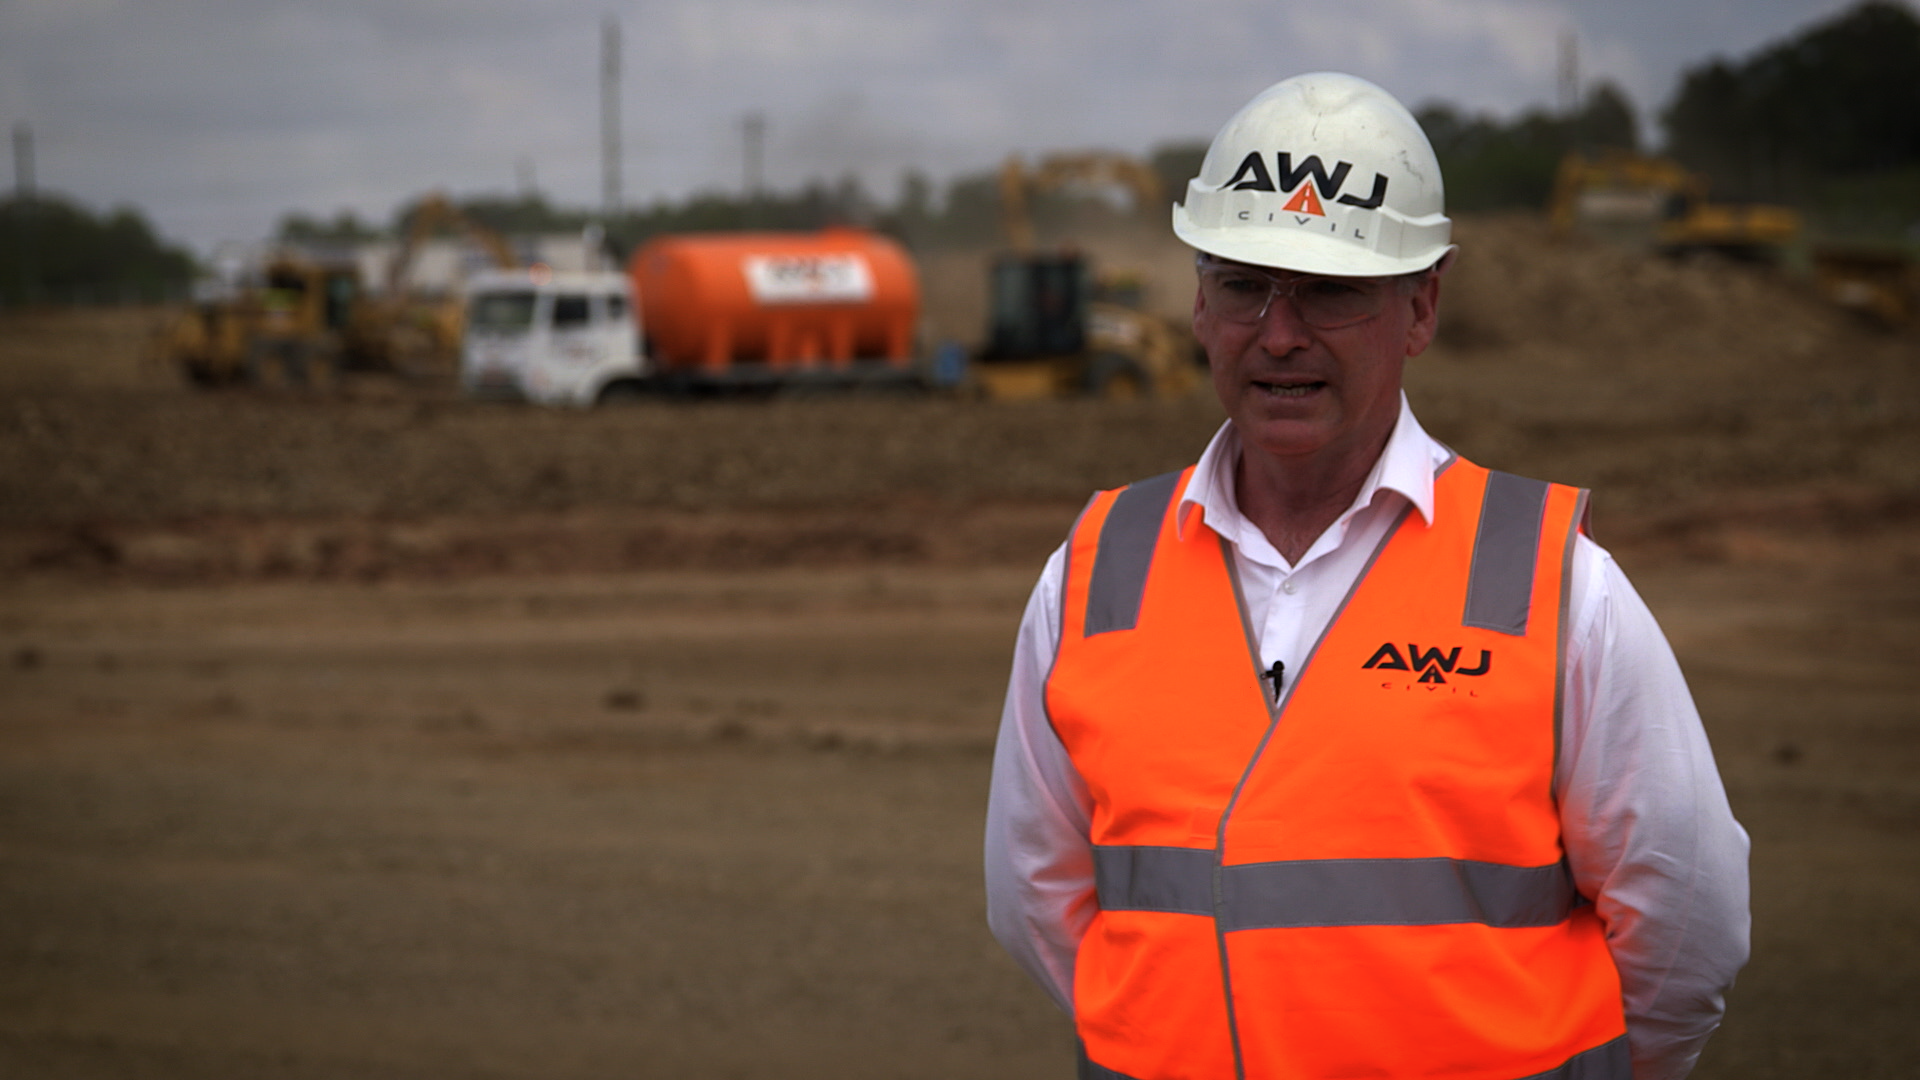 Martin O'Connell, Co-owner of AWJ Civil